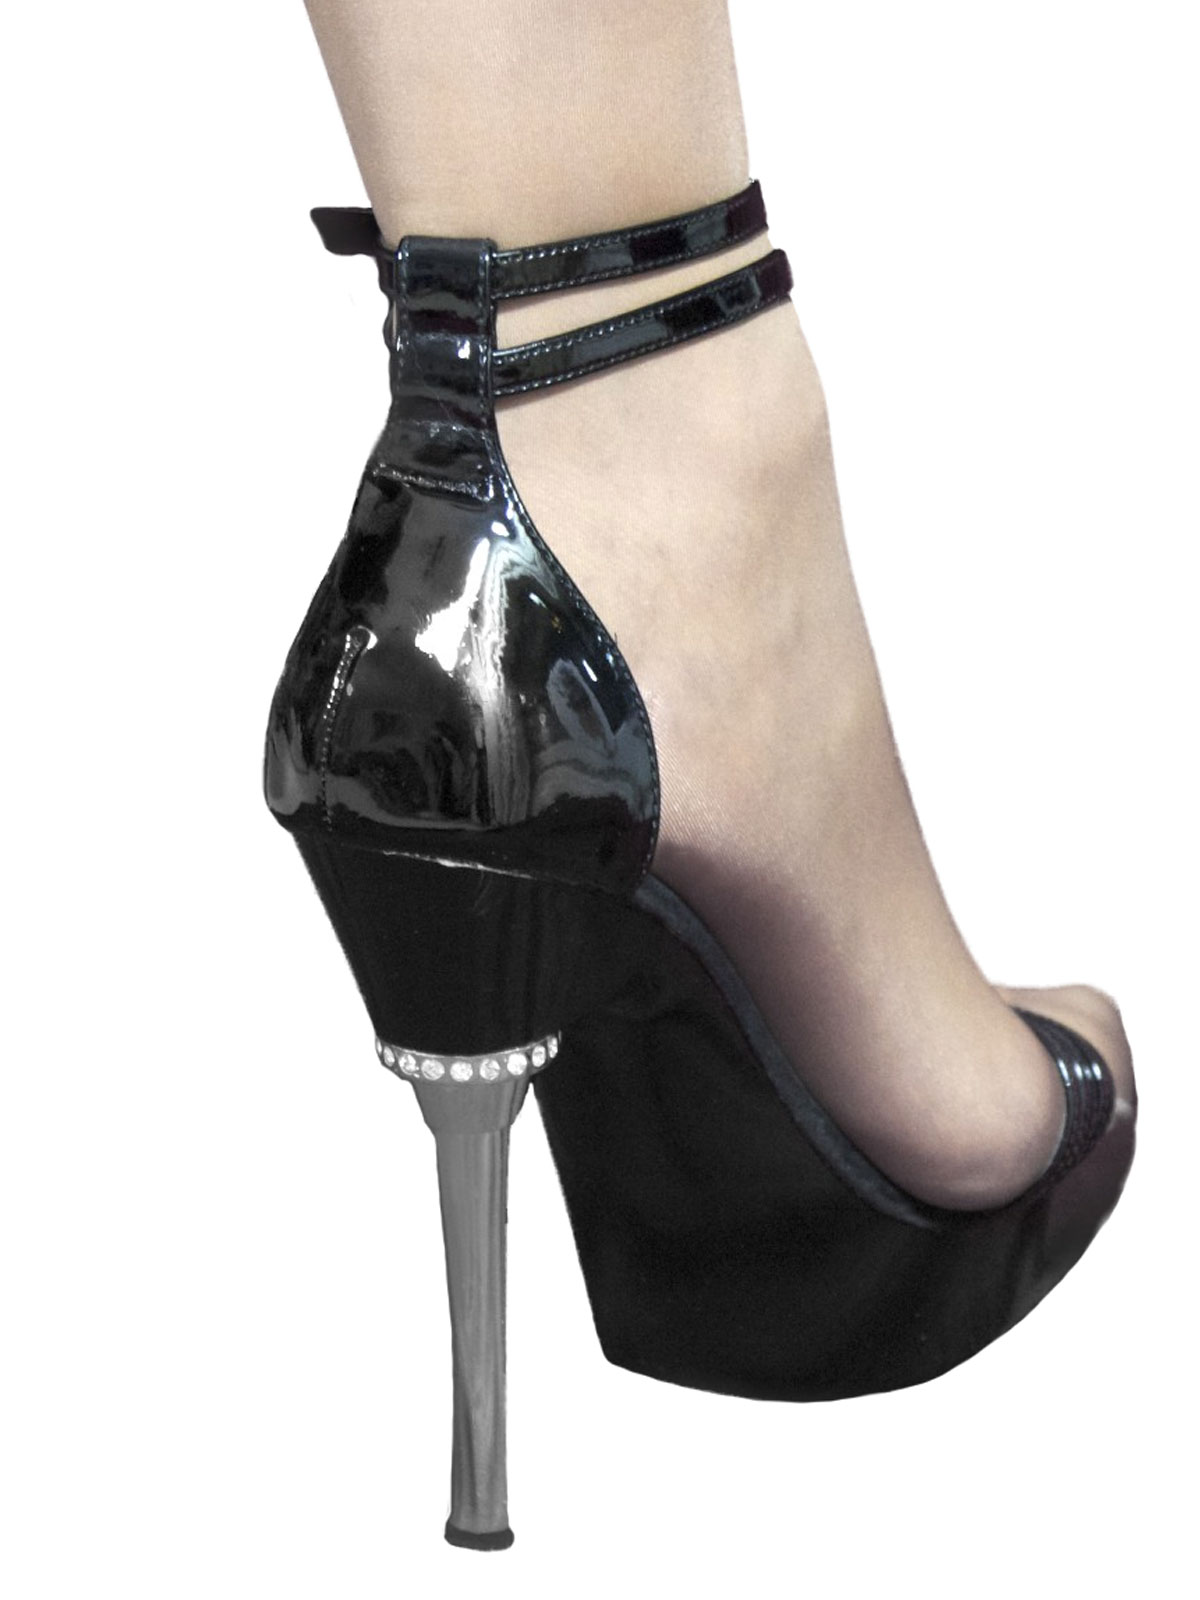 Pleaser Usa Shoes Reviews